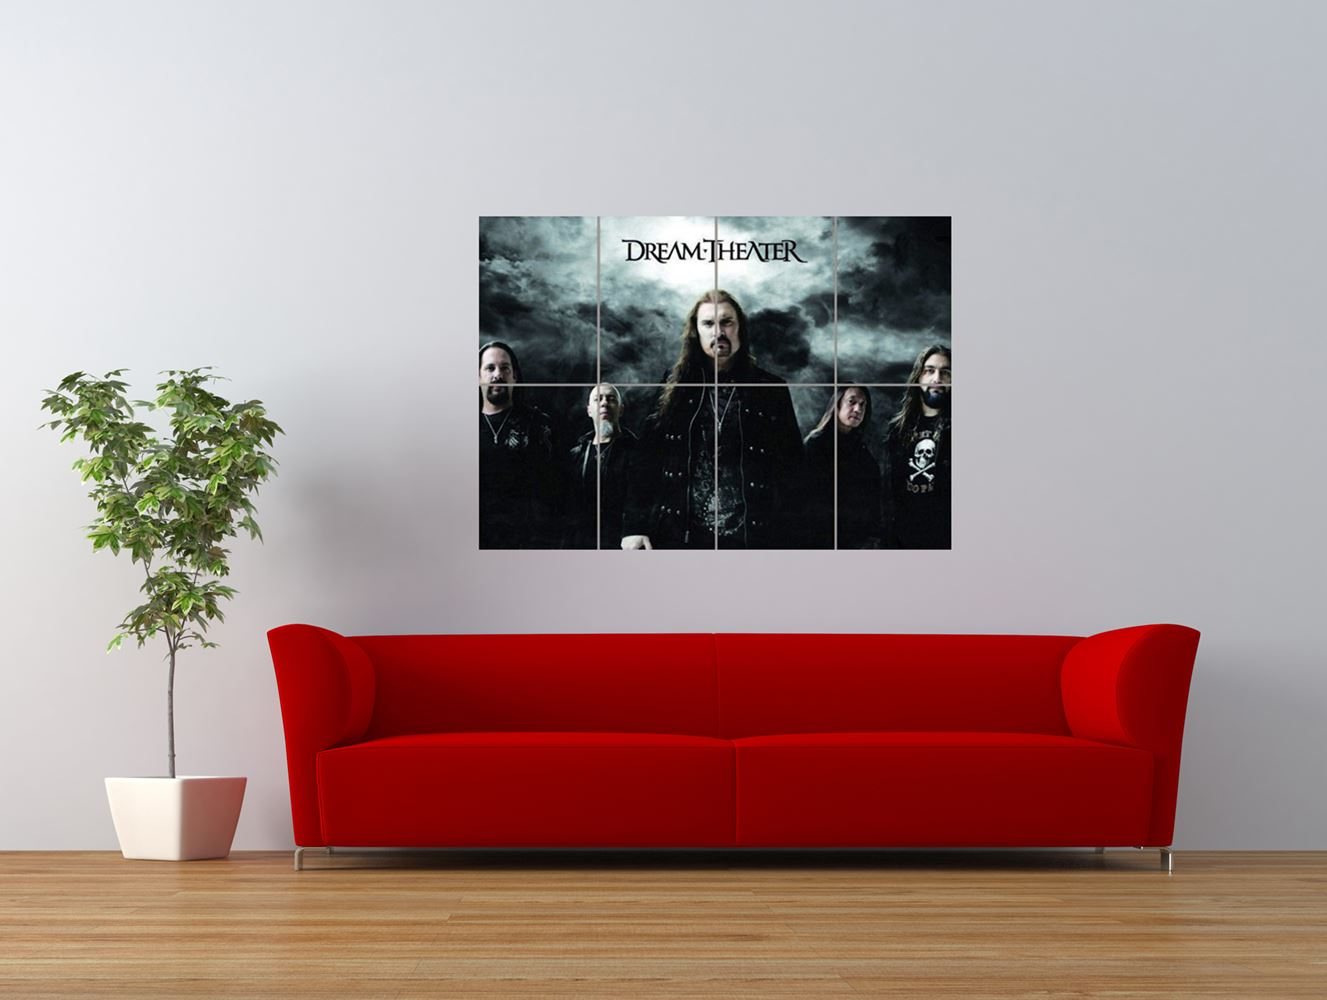 dream theater metal rock music band giant art print panel poster nor0112 ebay. Black Bedroom Furniture Sets. Home Design Ideas